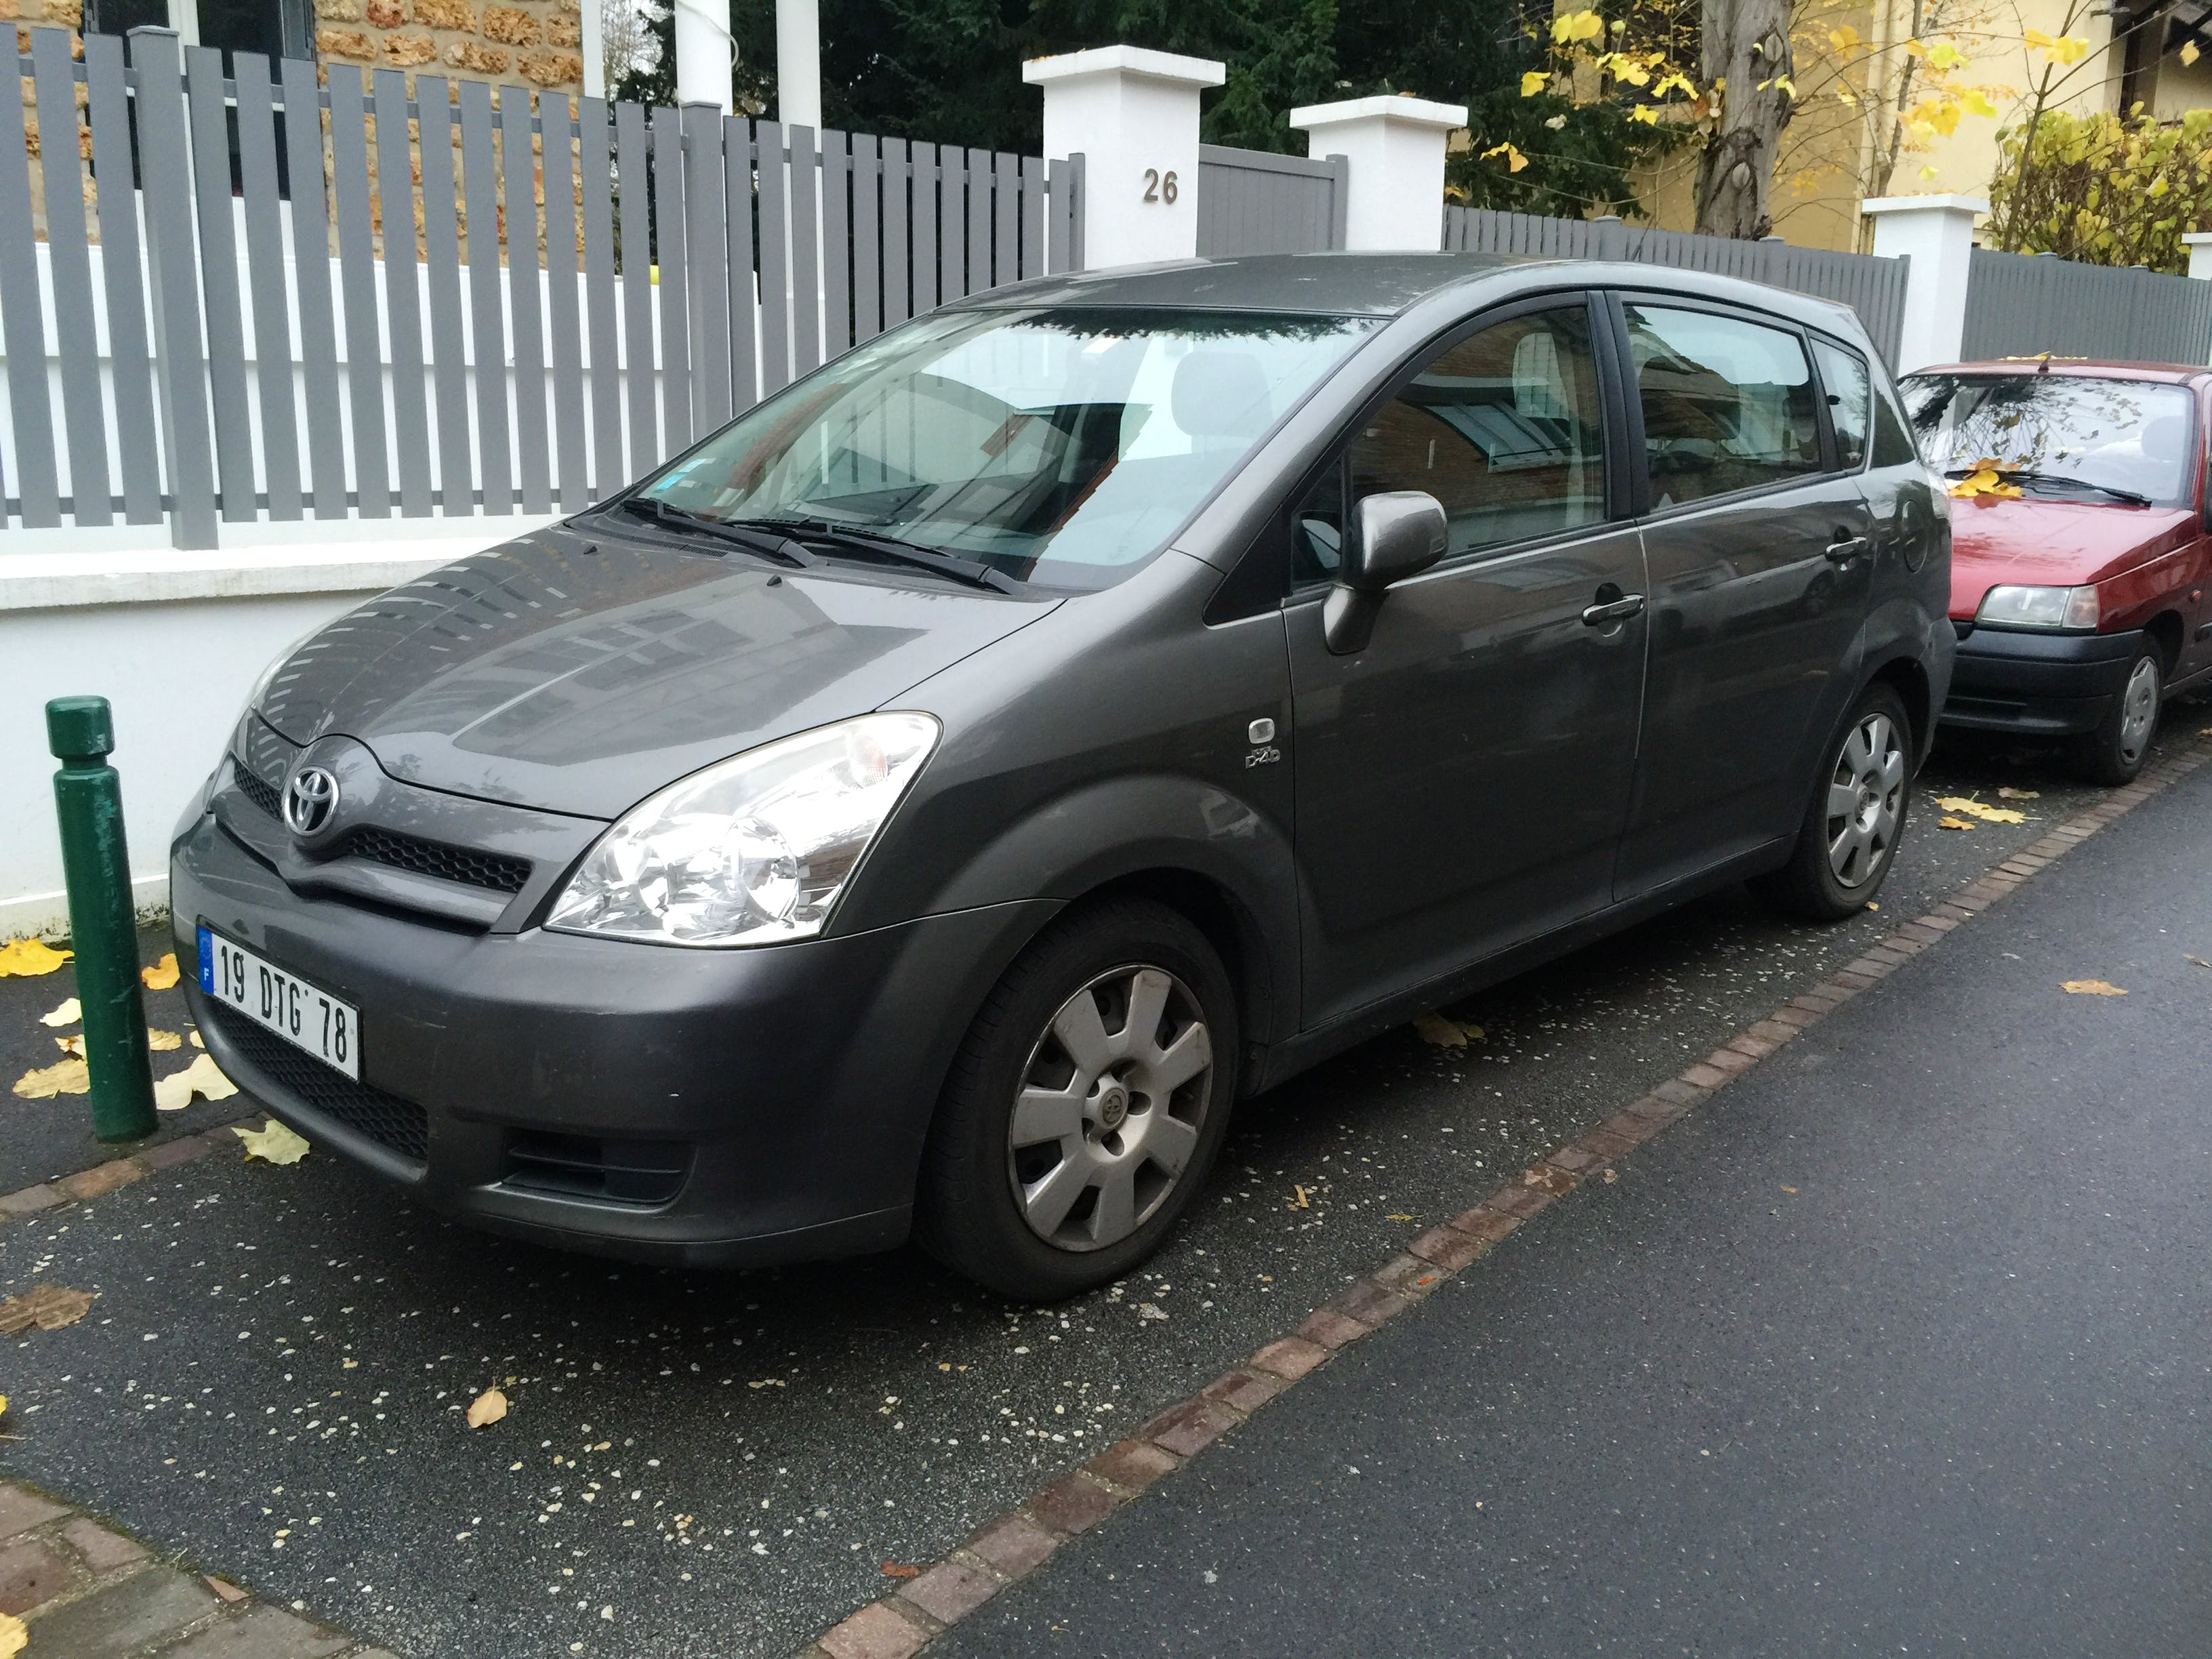 Toyota Corolla Verso 2.0 d4d 110ch, 2005, Diesel, 7 places